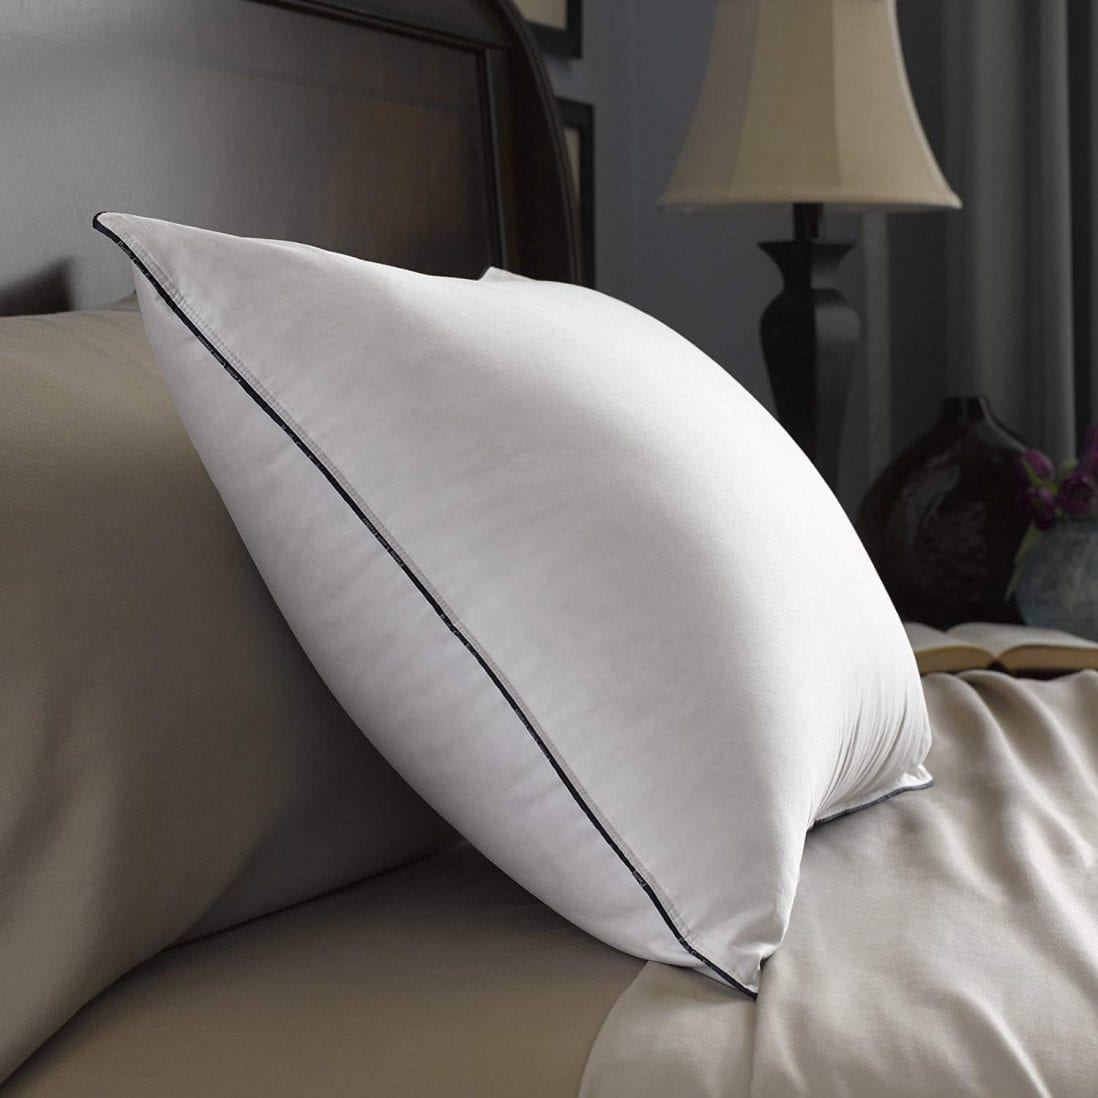 Pacific Coast Double Down Around Pillow Review and Buying Guide by www.dailysleep.com